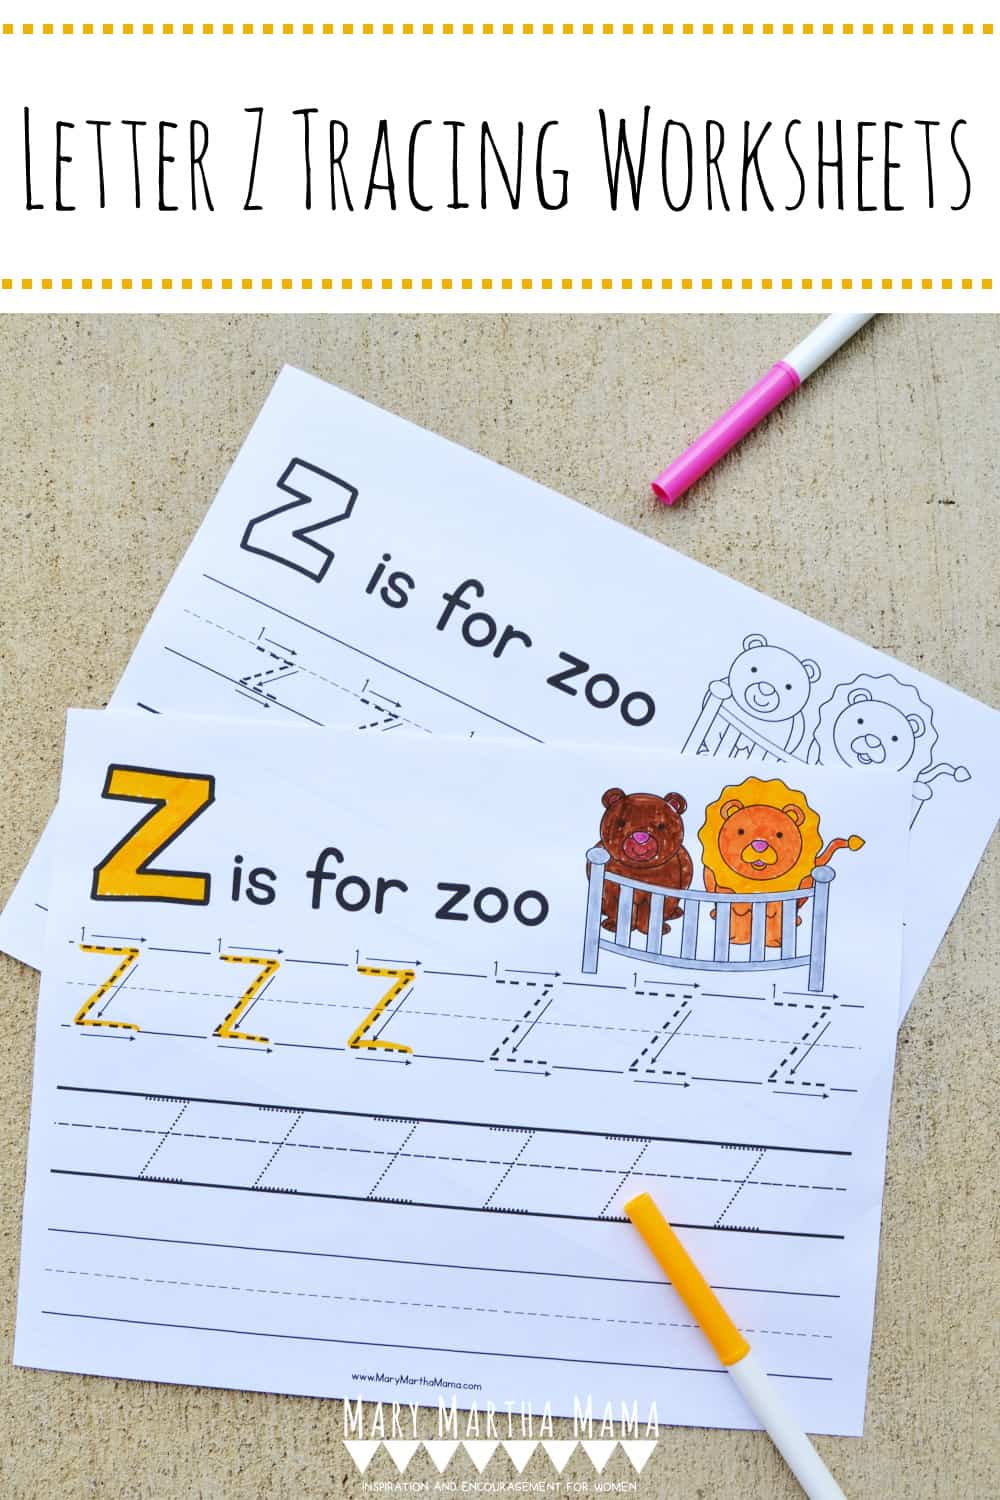 Use these free printable Letter Z Tracing Worksheets to help your kiddo learn proper letter formation for upper and lower case letter Z.